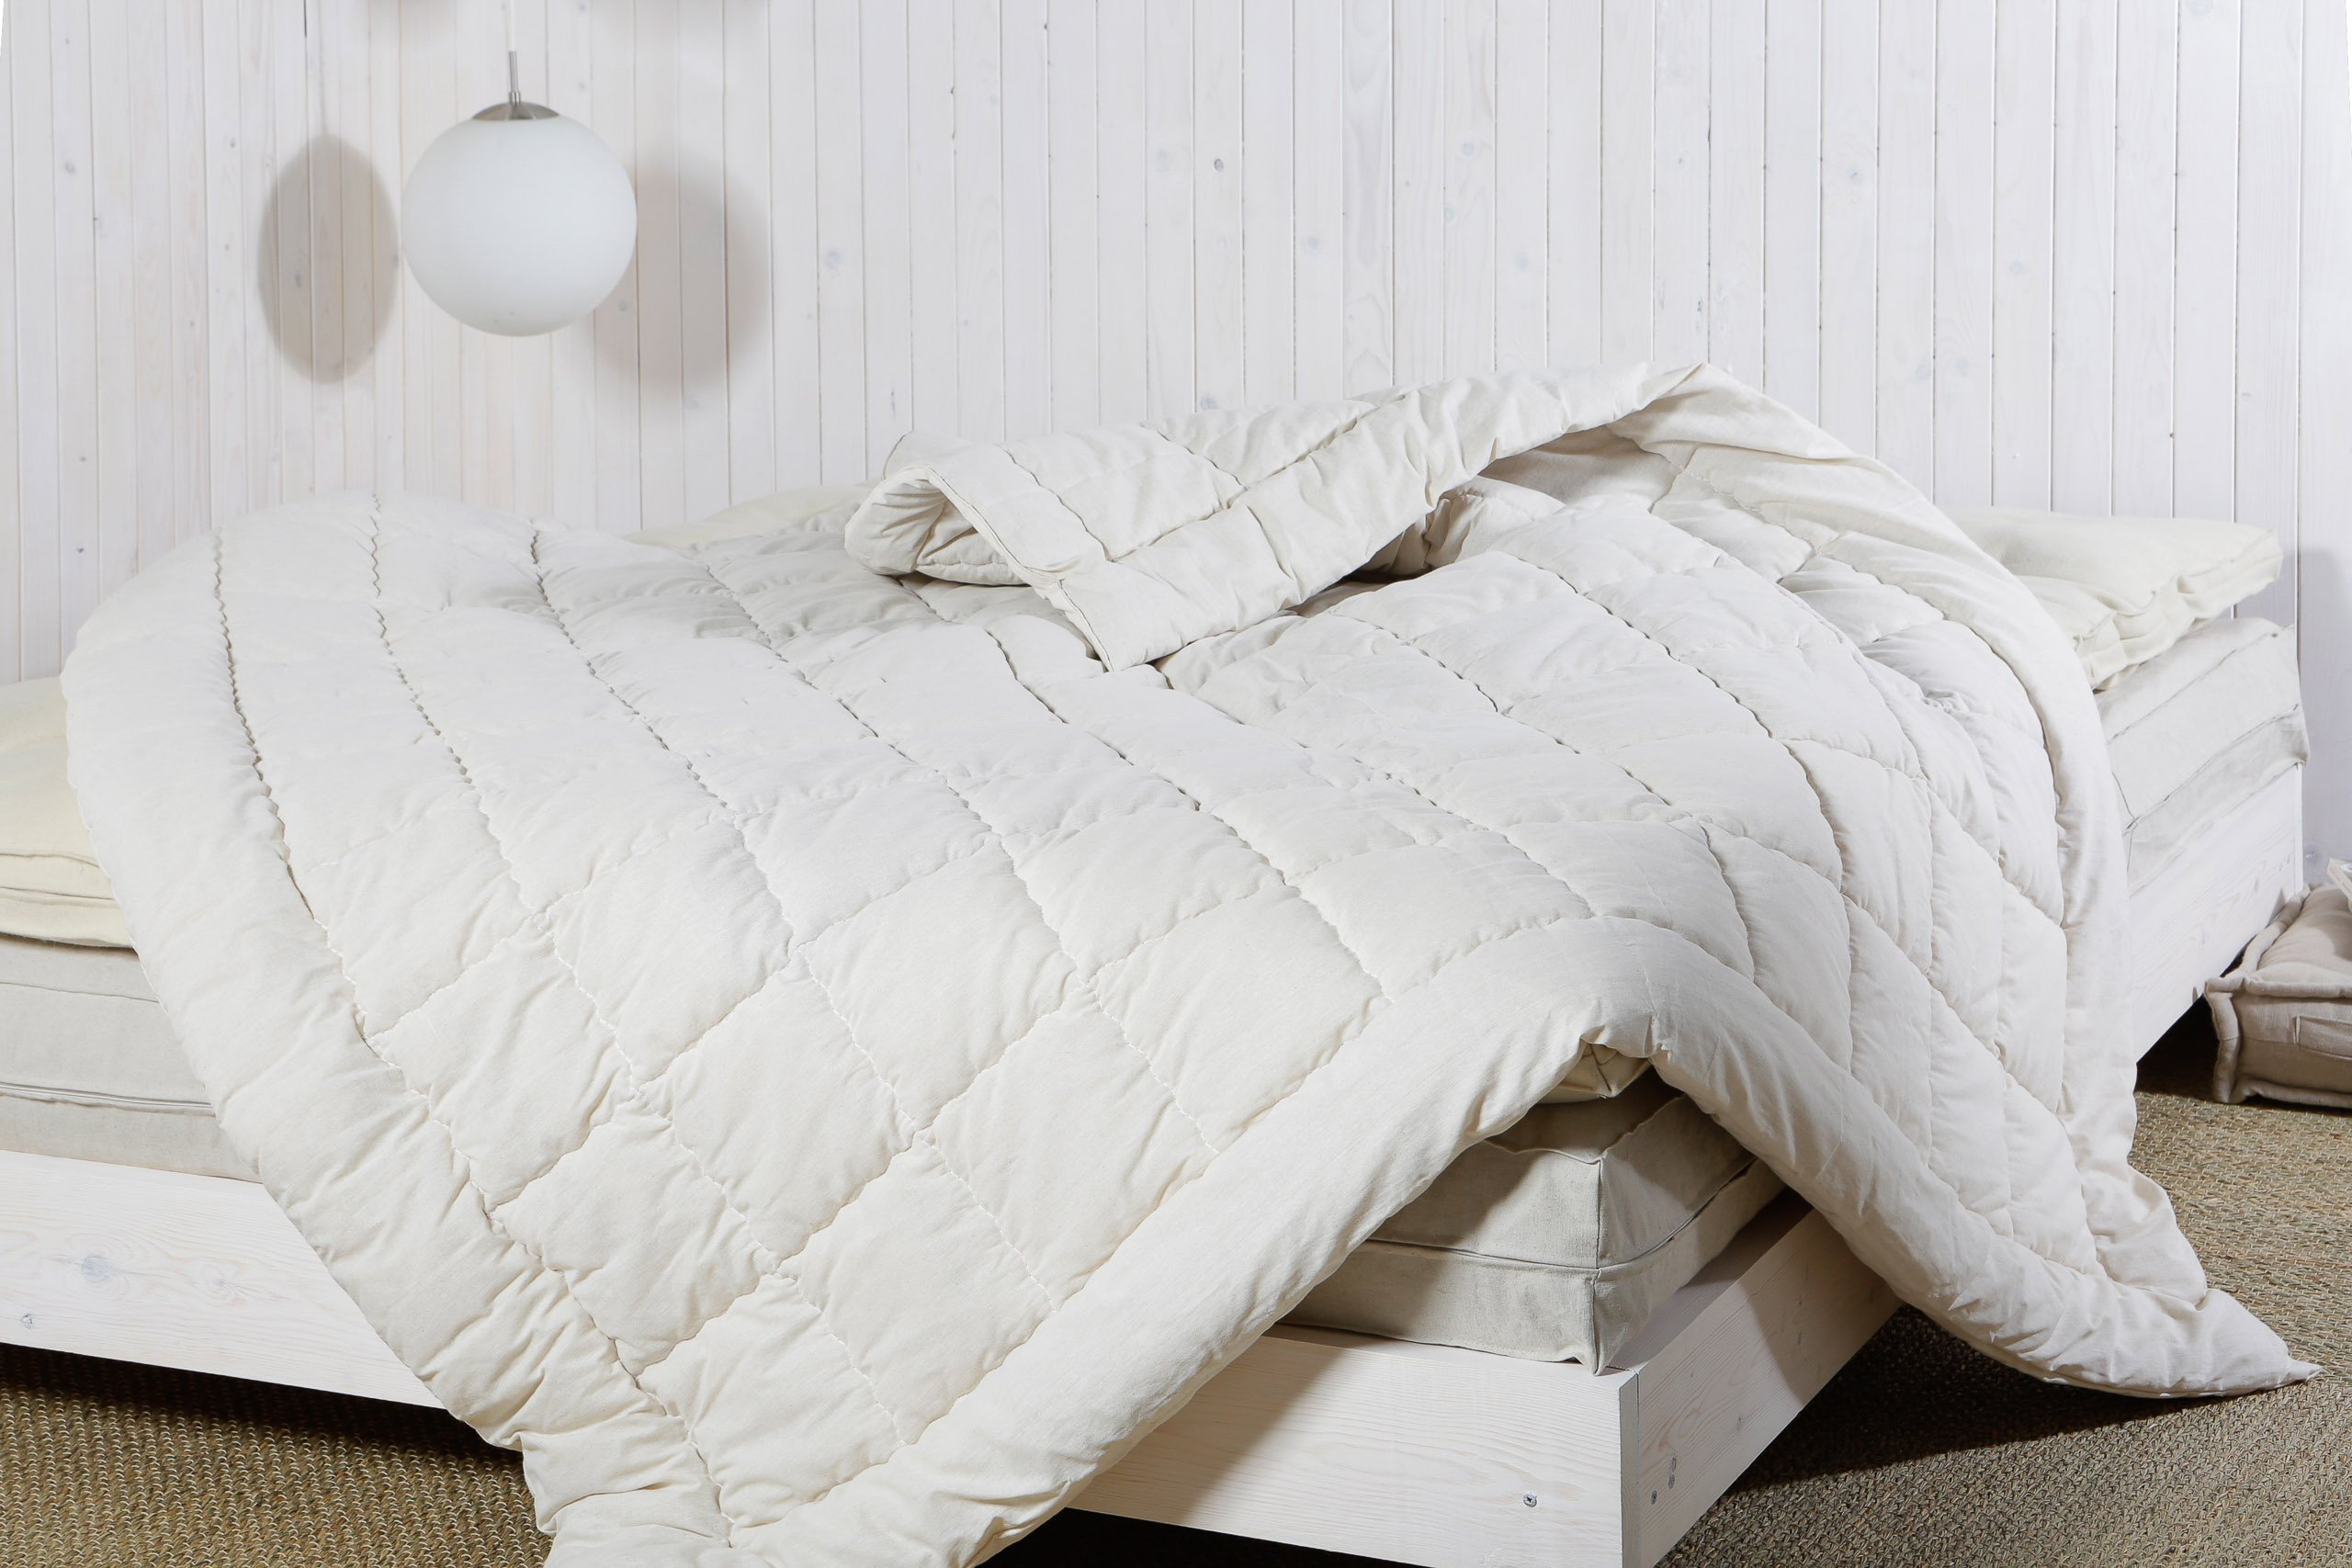 Home of Wool / Handmade Wool-filled Duvet Insert / Quilt / Comforter / Doona / Summer or Winter thickness / Natural / Non-toxic / Full, Twin, Queen, King or Any Custom Size by Home Of Wool (Image #1)